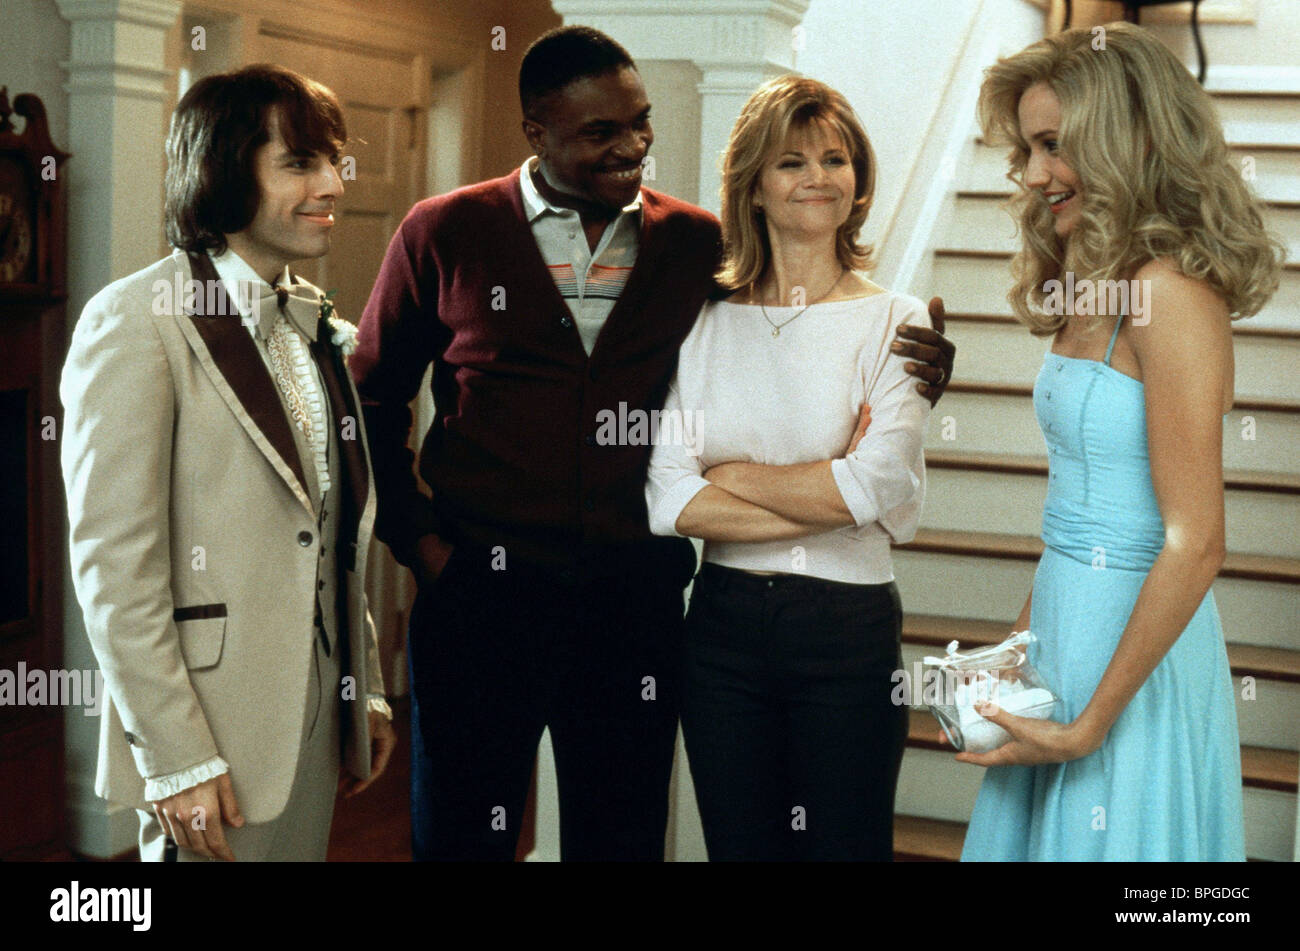 BEN STILLER, KEITH DAVID, MARKIE POST, CAMERON DIAZ, THERE'S SOMETHING ABOUT MARY, 1998 - Stock Image